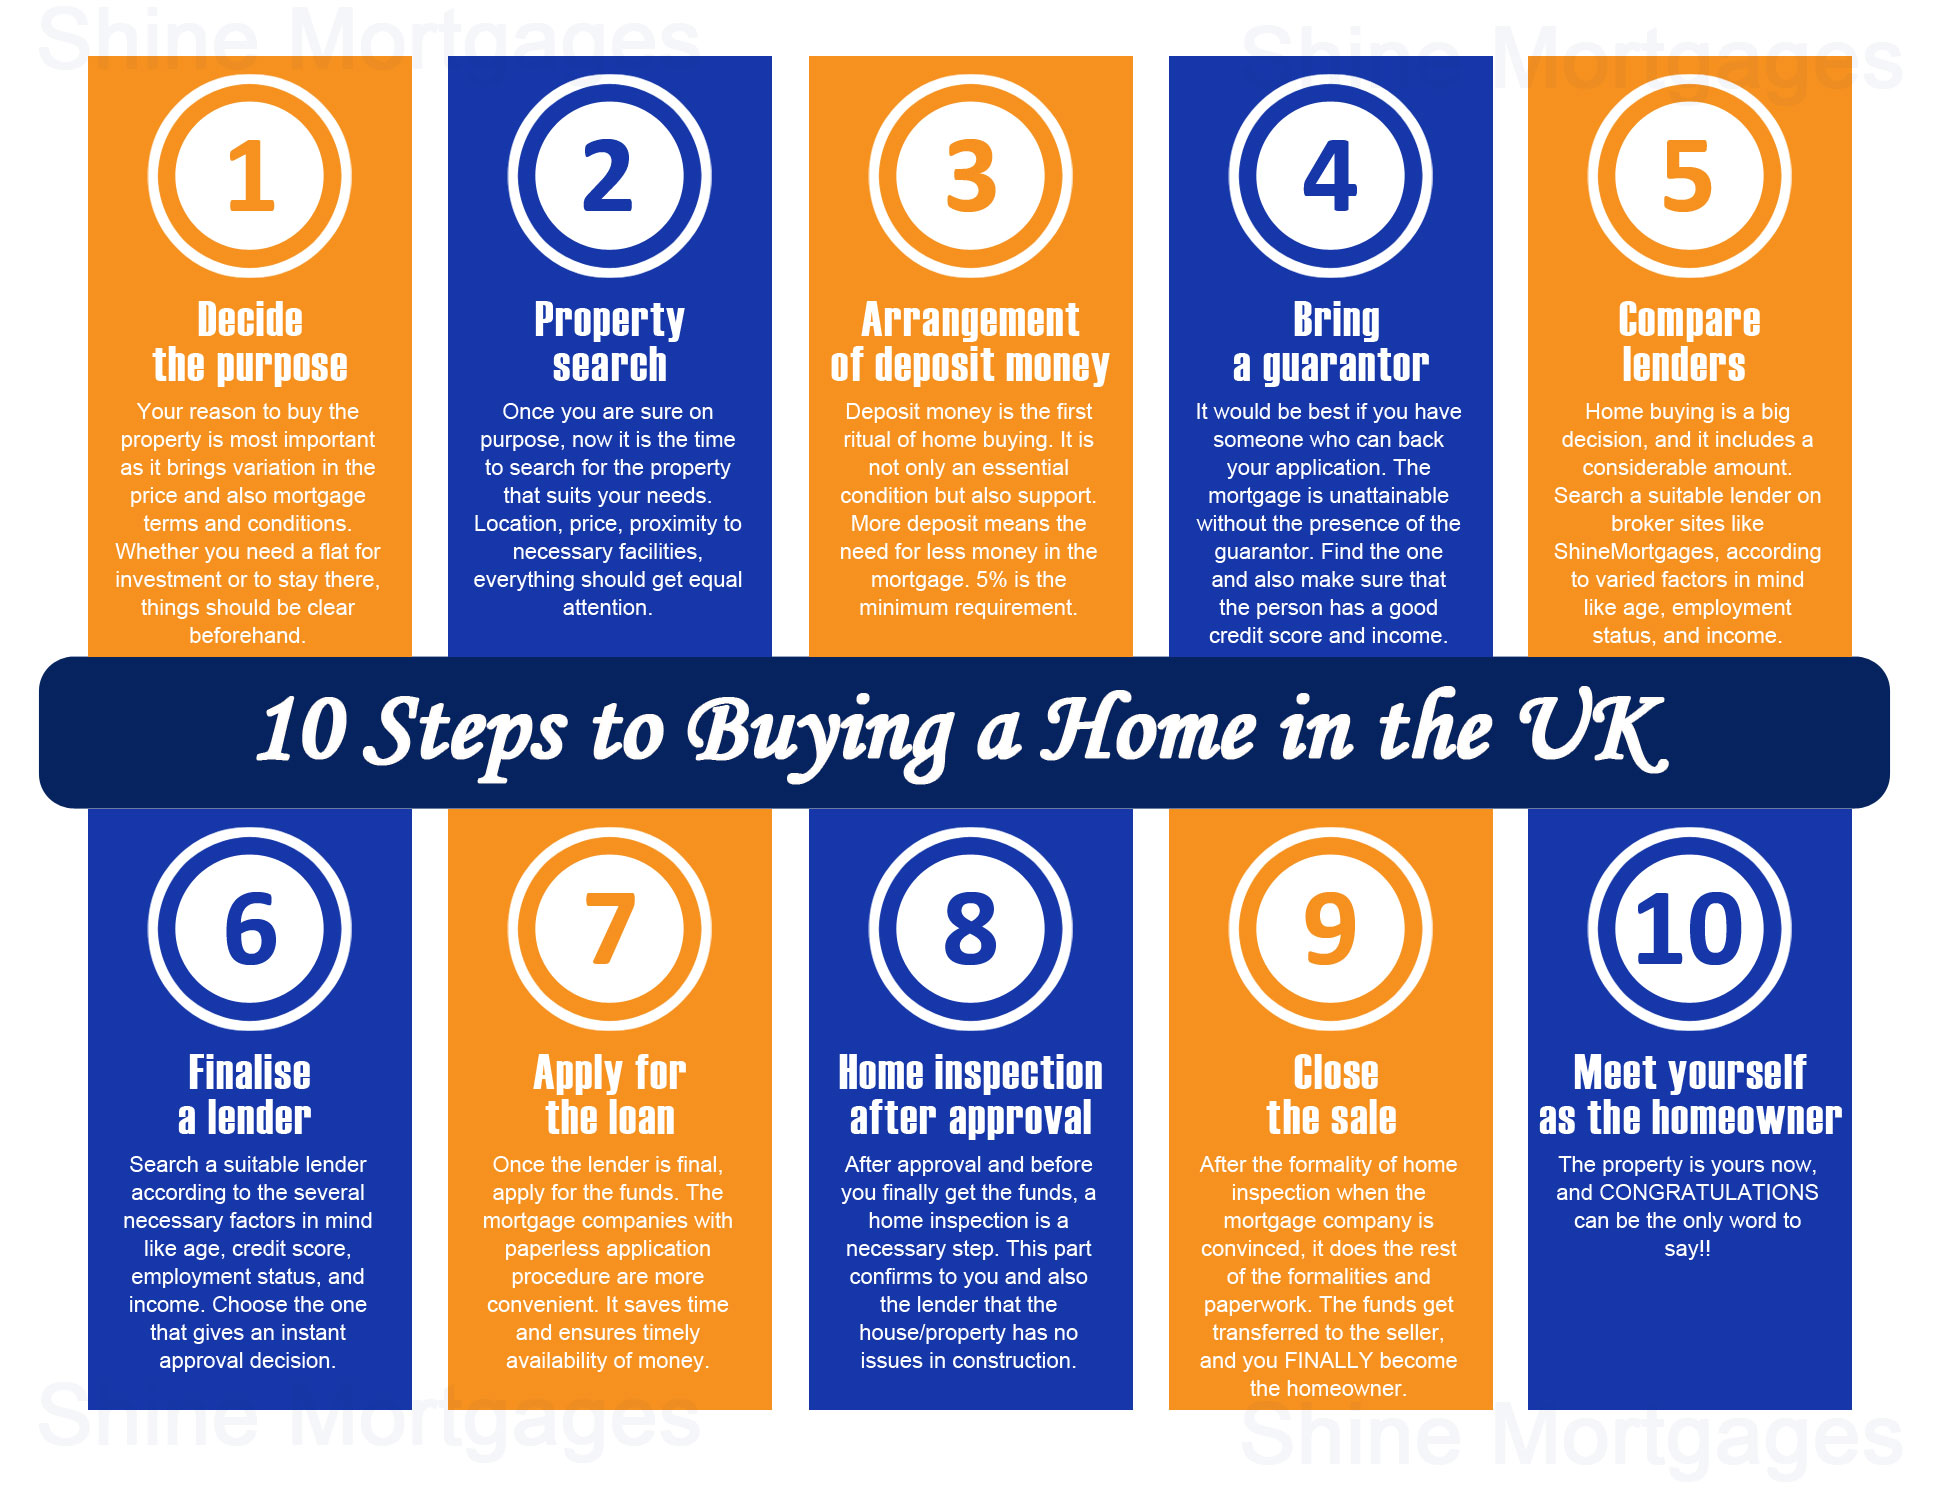 What are the steps to buying a home for the first time?